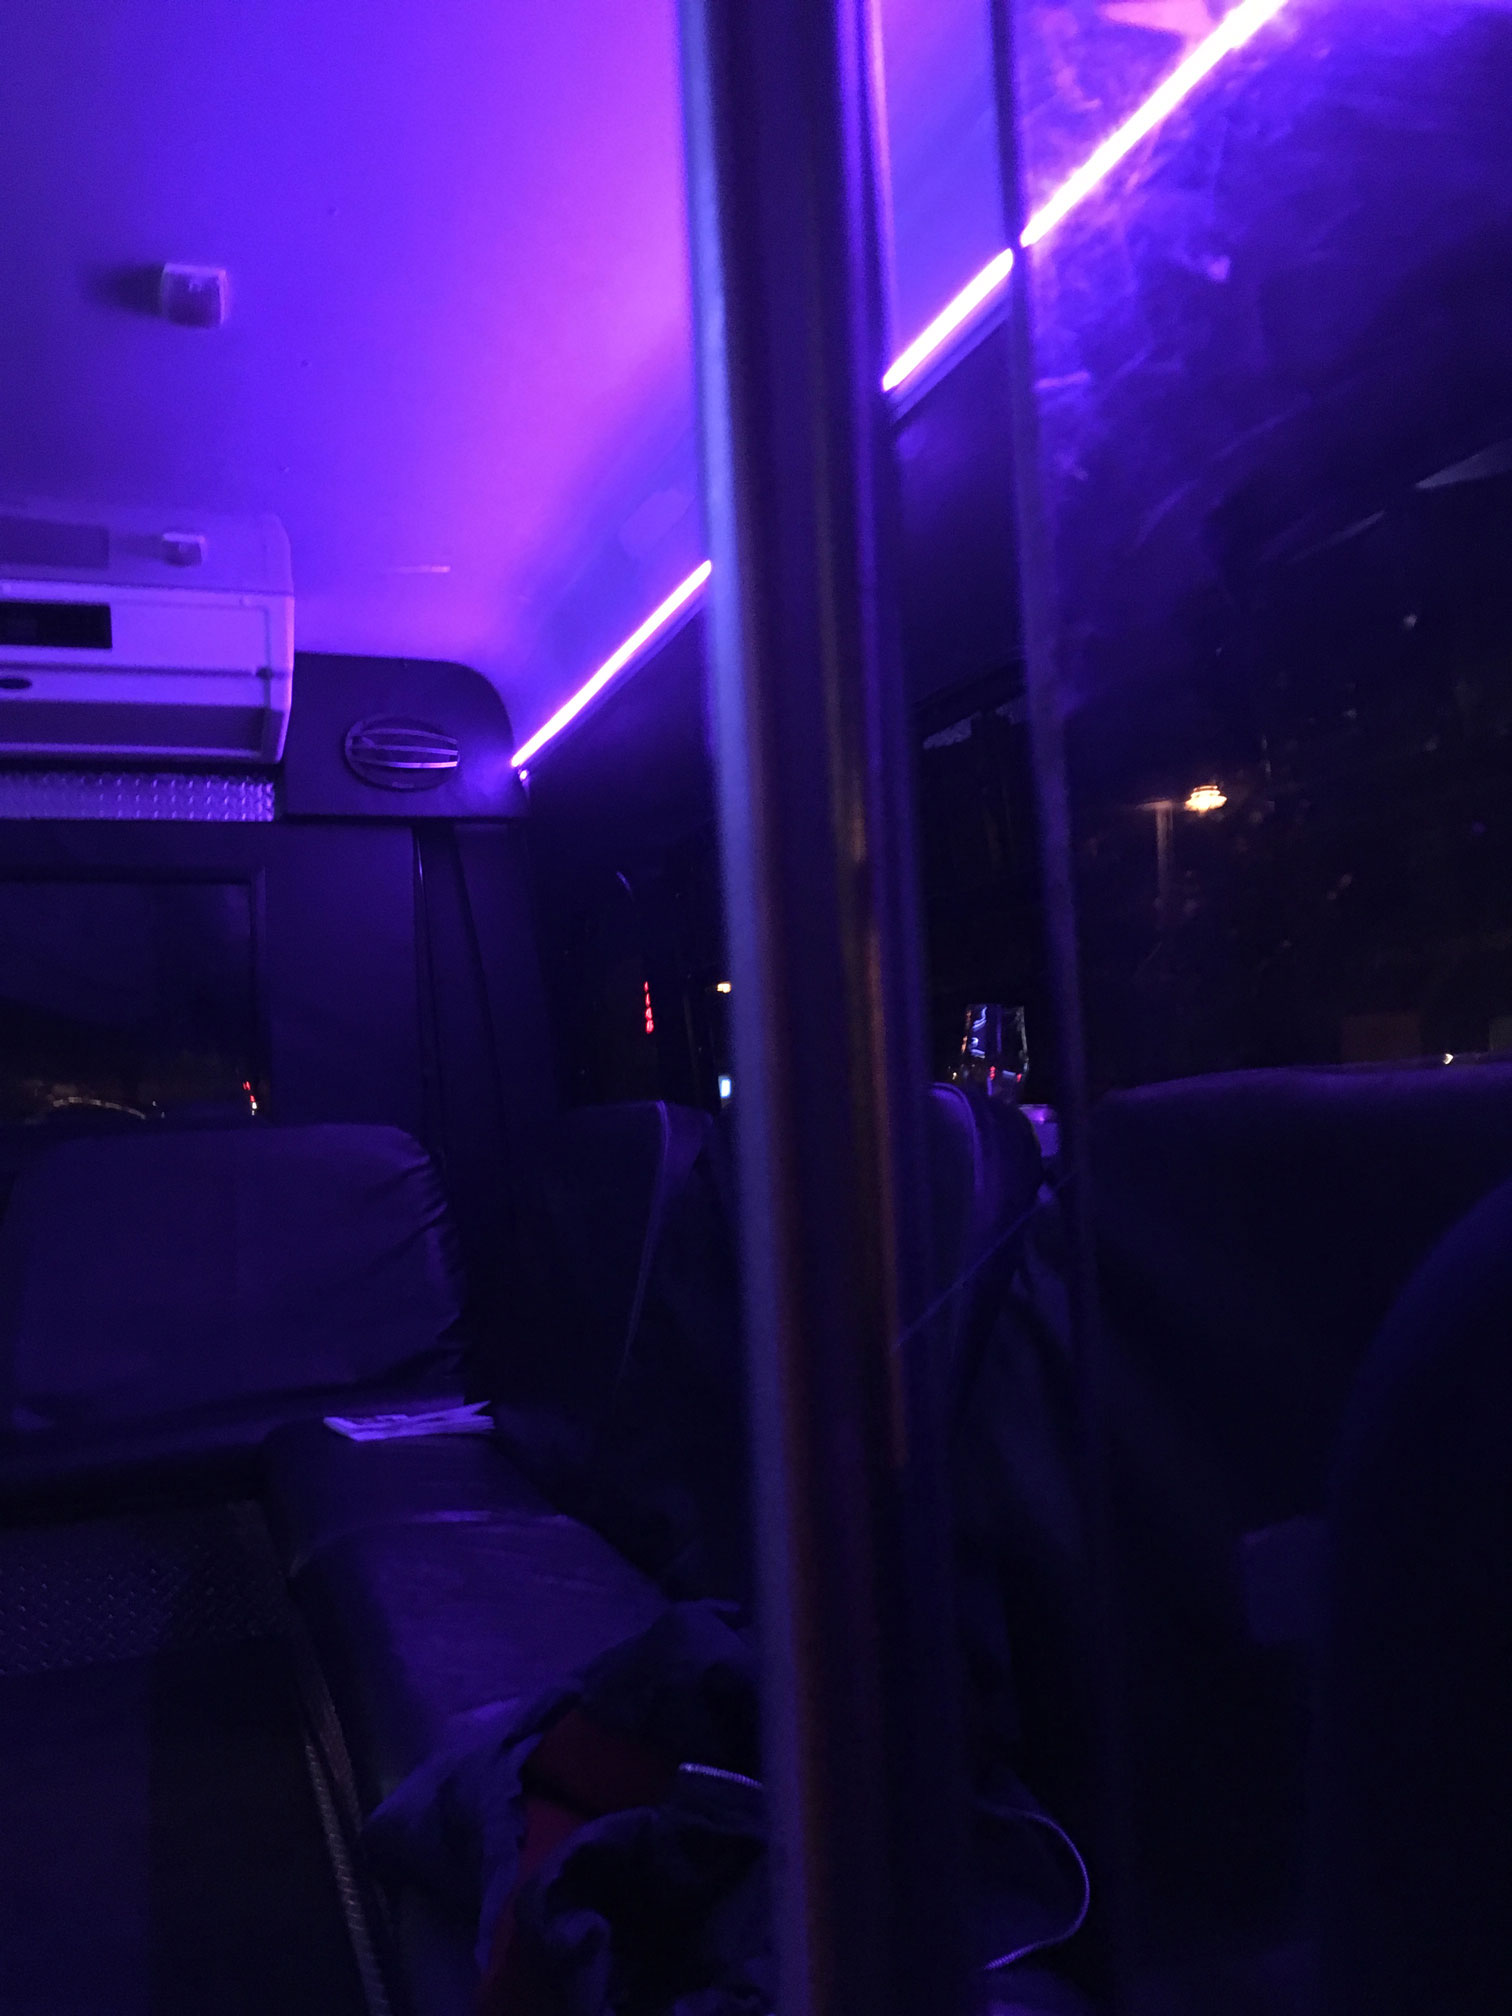 neon lights in Party bus at night